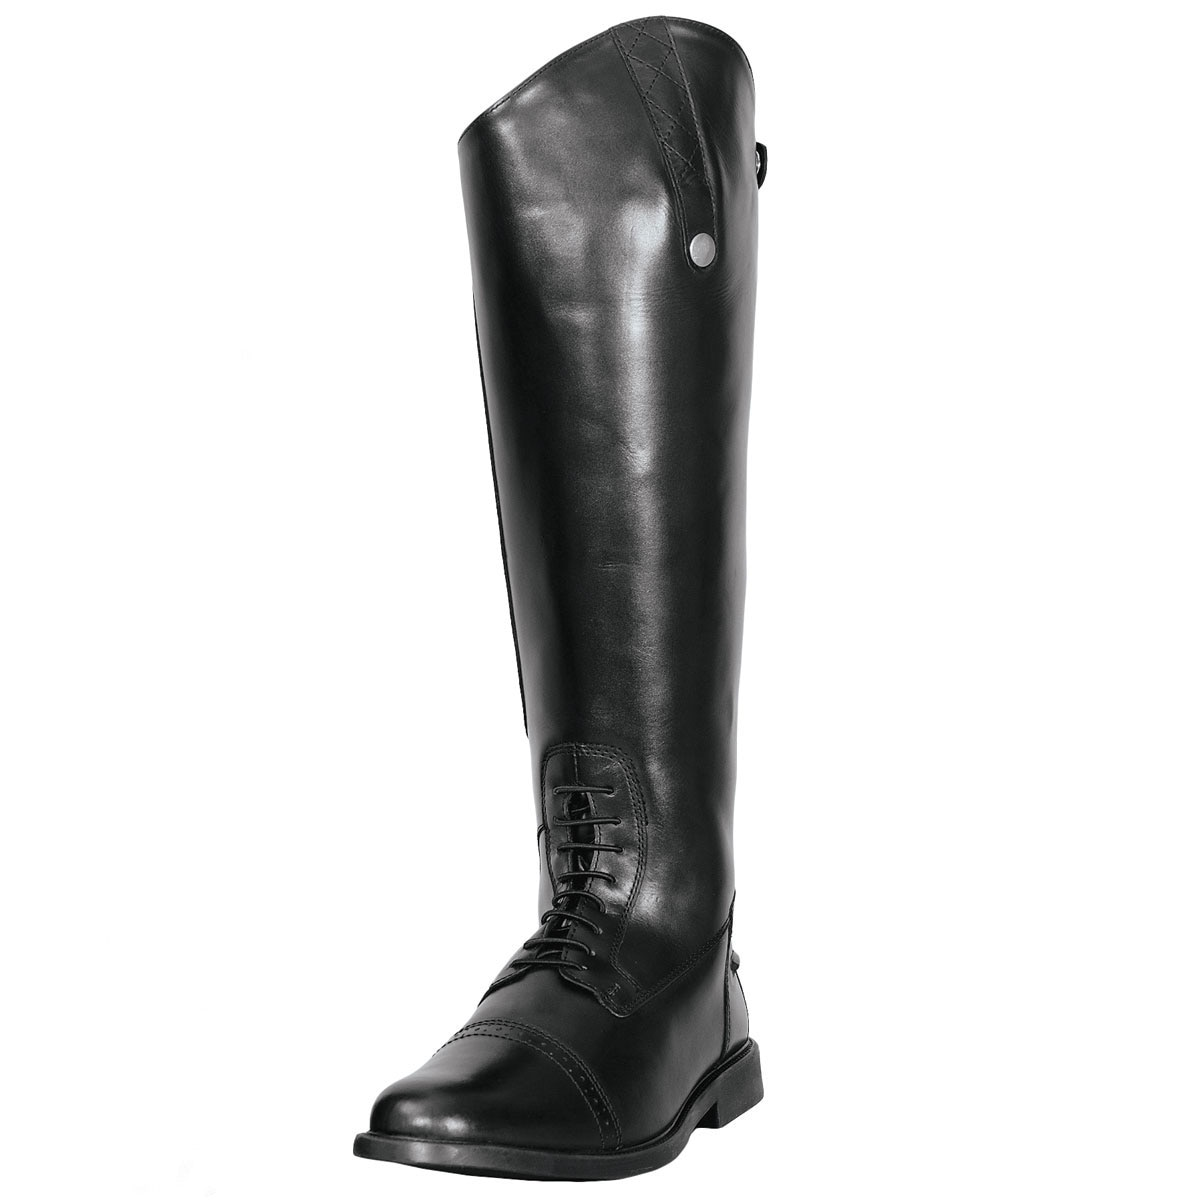 Tuffrider Plus Rider Field Boot